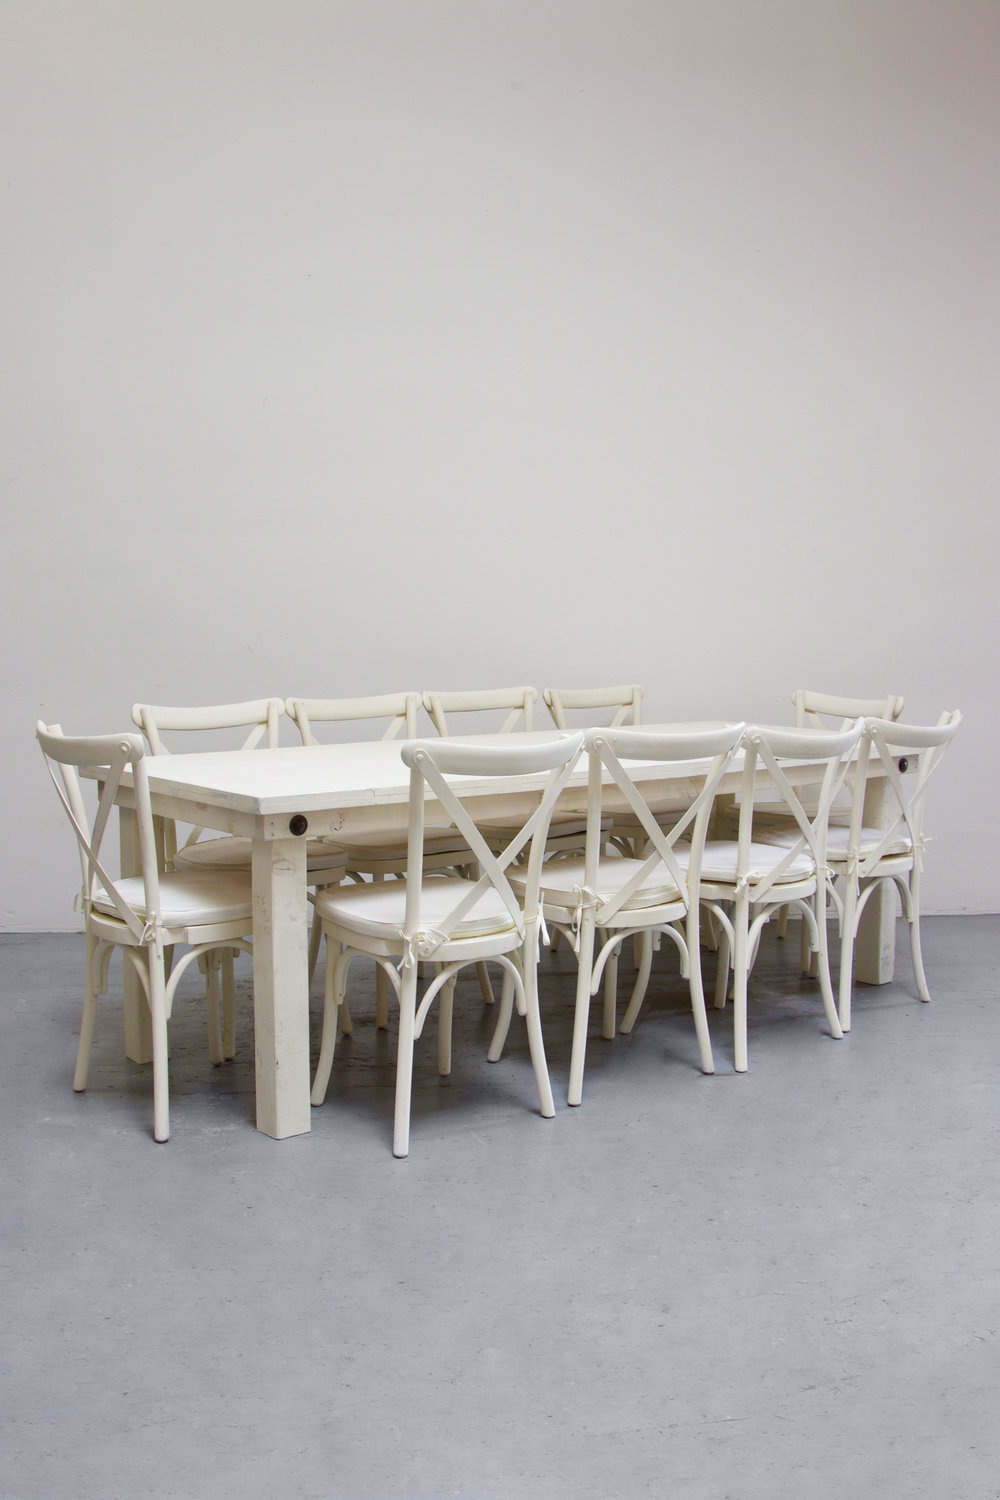 1 Vintage White Farm Table w/ 10 Cross-Back Chairs $160